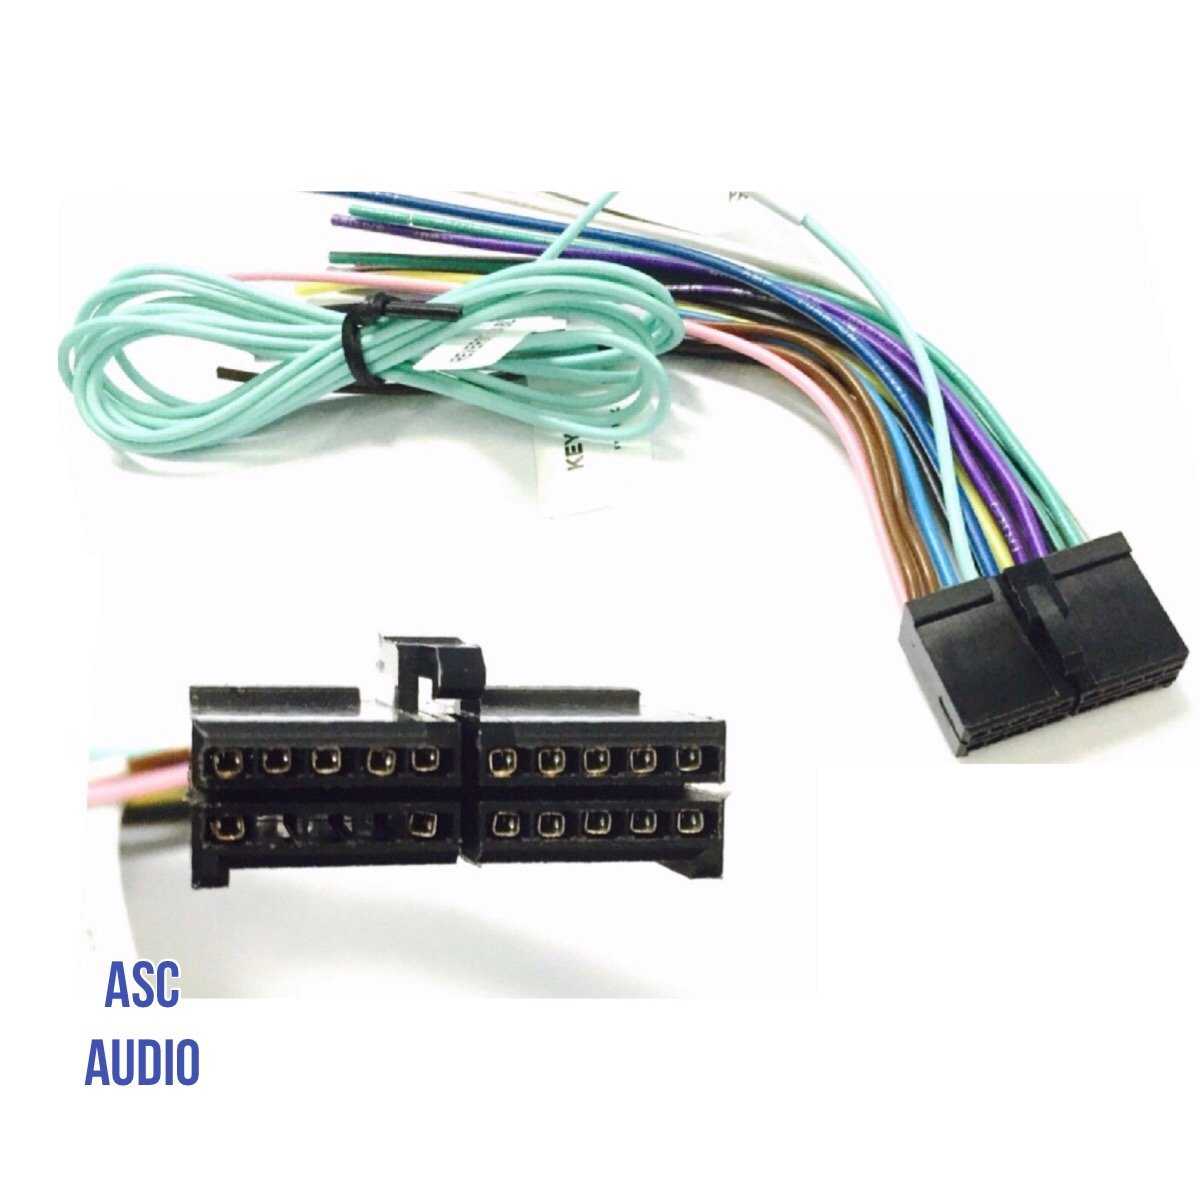 ASC Audio Car Stereo Radio Wire Harness Plug for select Boss 20 Pin Radios  DVD Nav